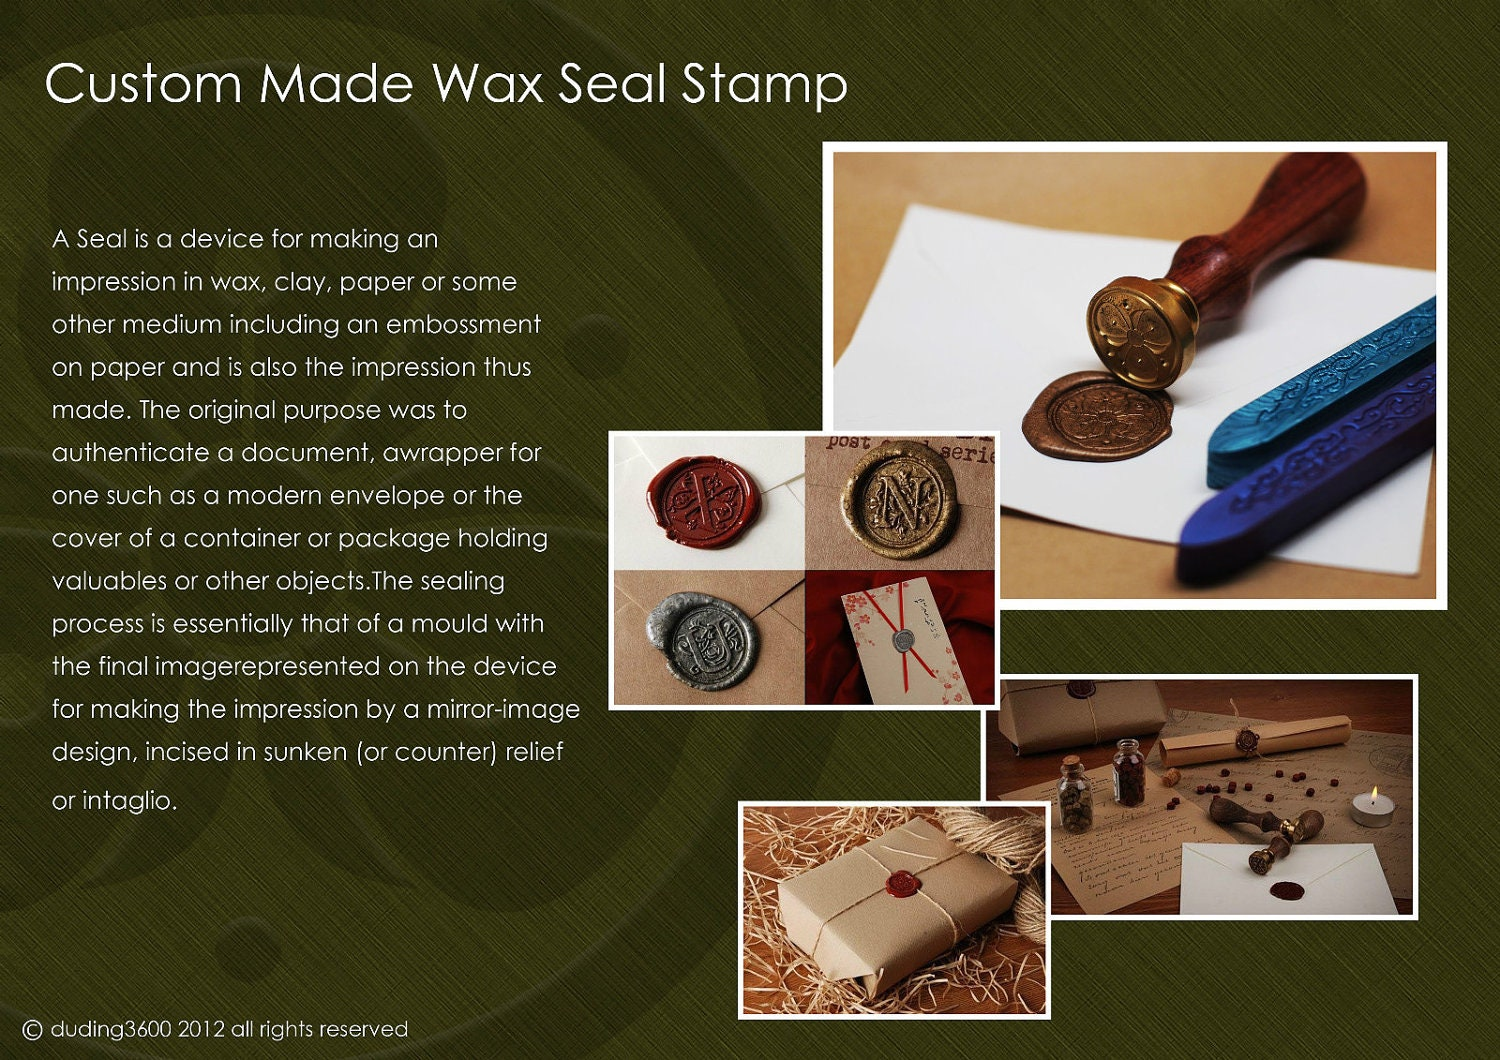 Wedding Invite Stamp: Custom Classic Wax Seal Stamp Wedding Invitation Letter Card